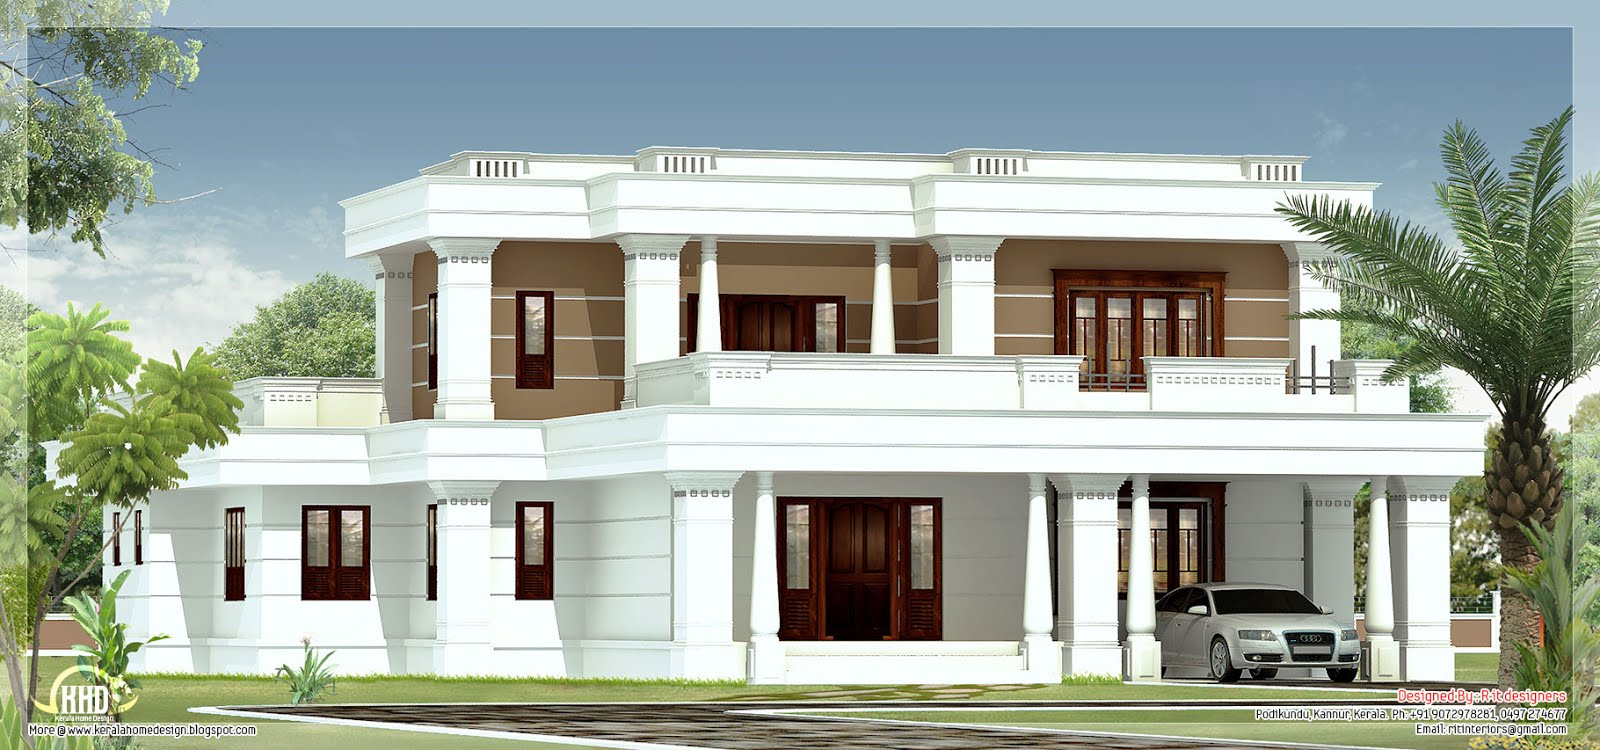 4 bedroom flat roof villa kerala home design and floor plans for Apartment villa design